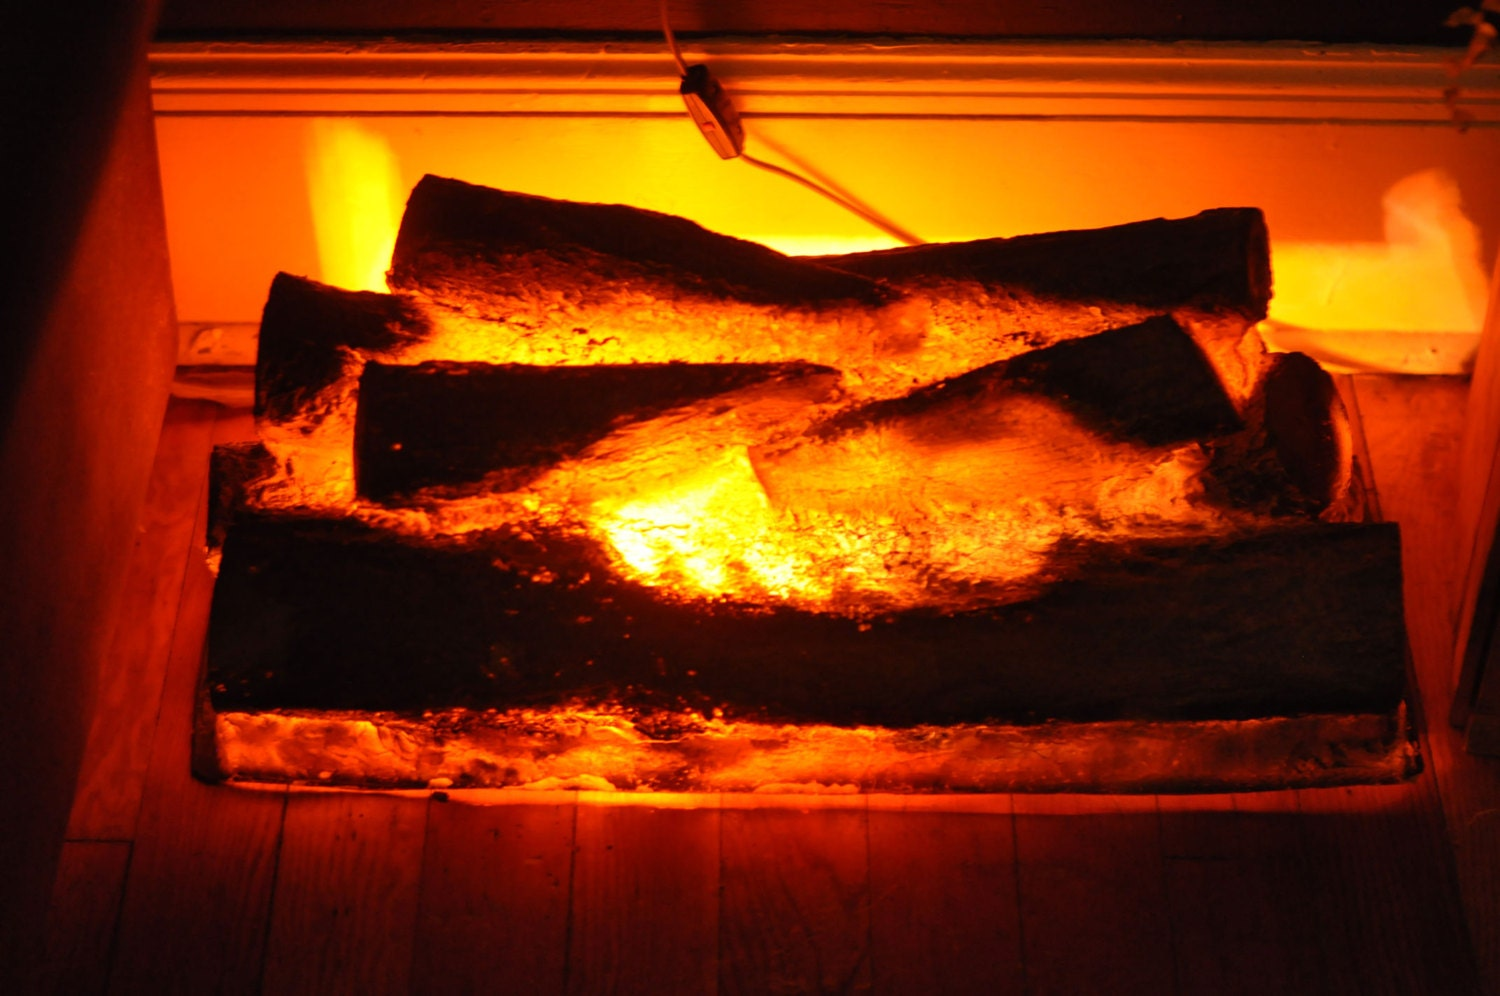 Fake logs for fireplace